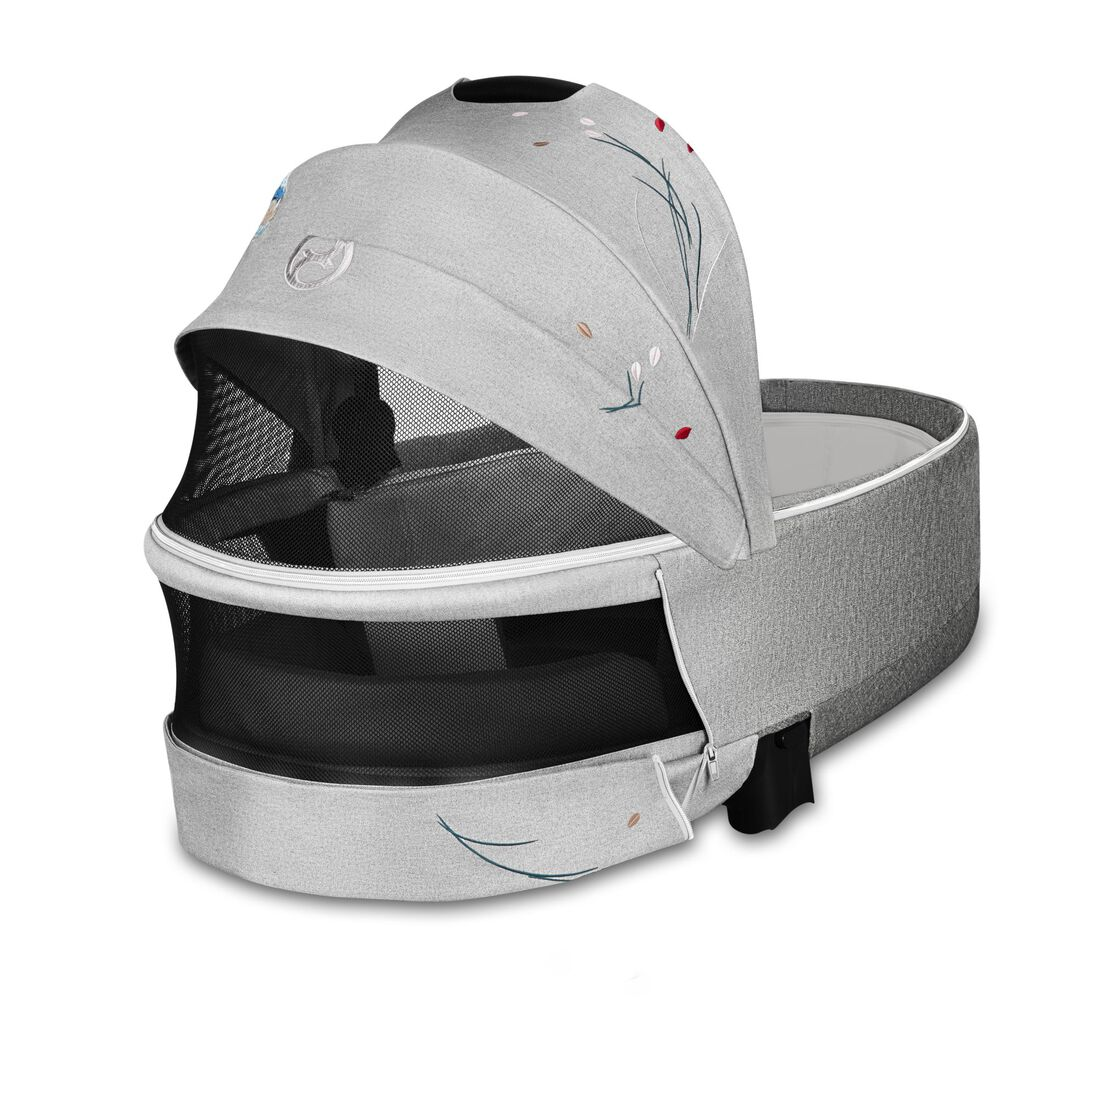 CYBEX Priam Lux Carry Cot - Koi in Koi large image number 3